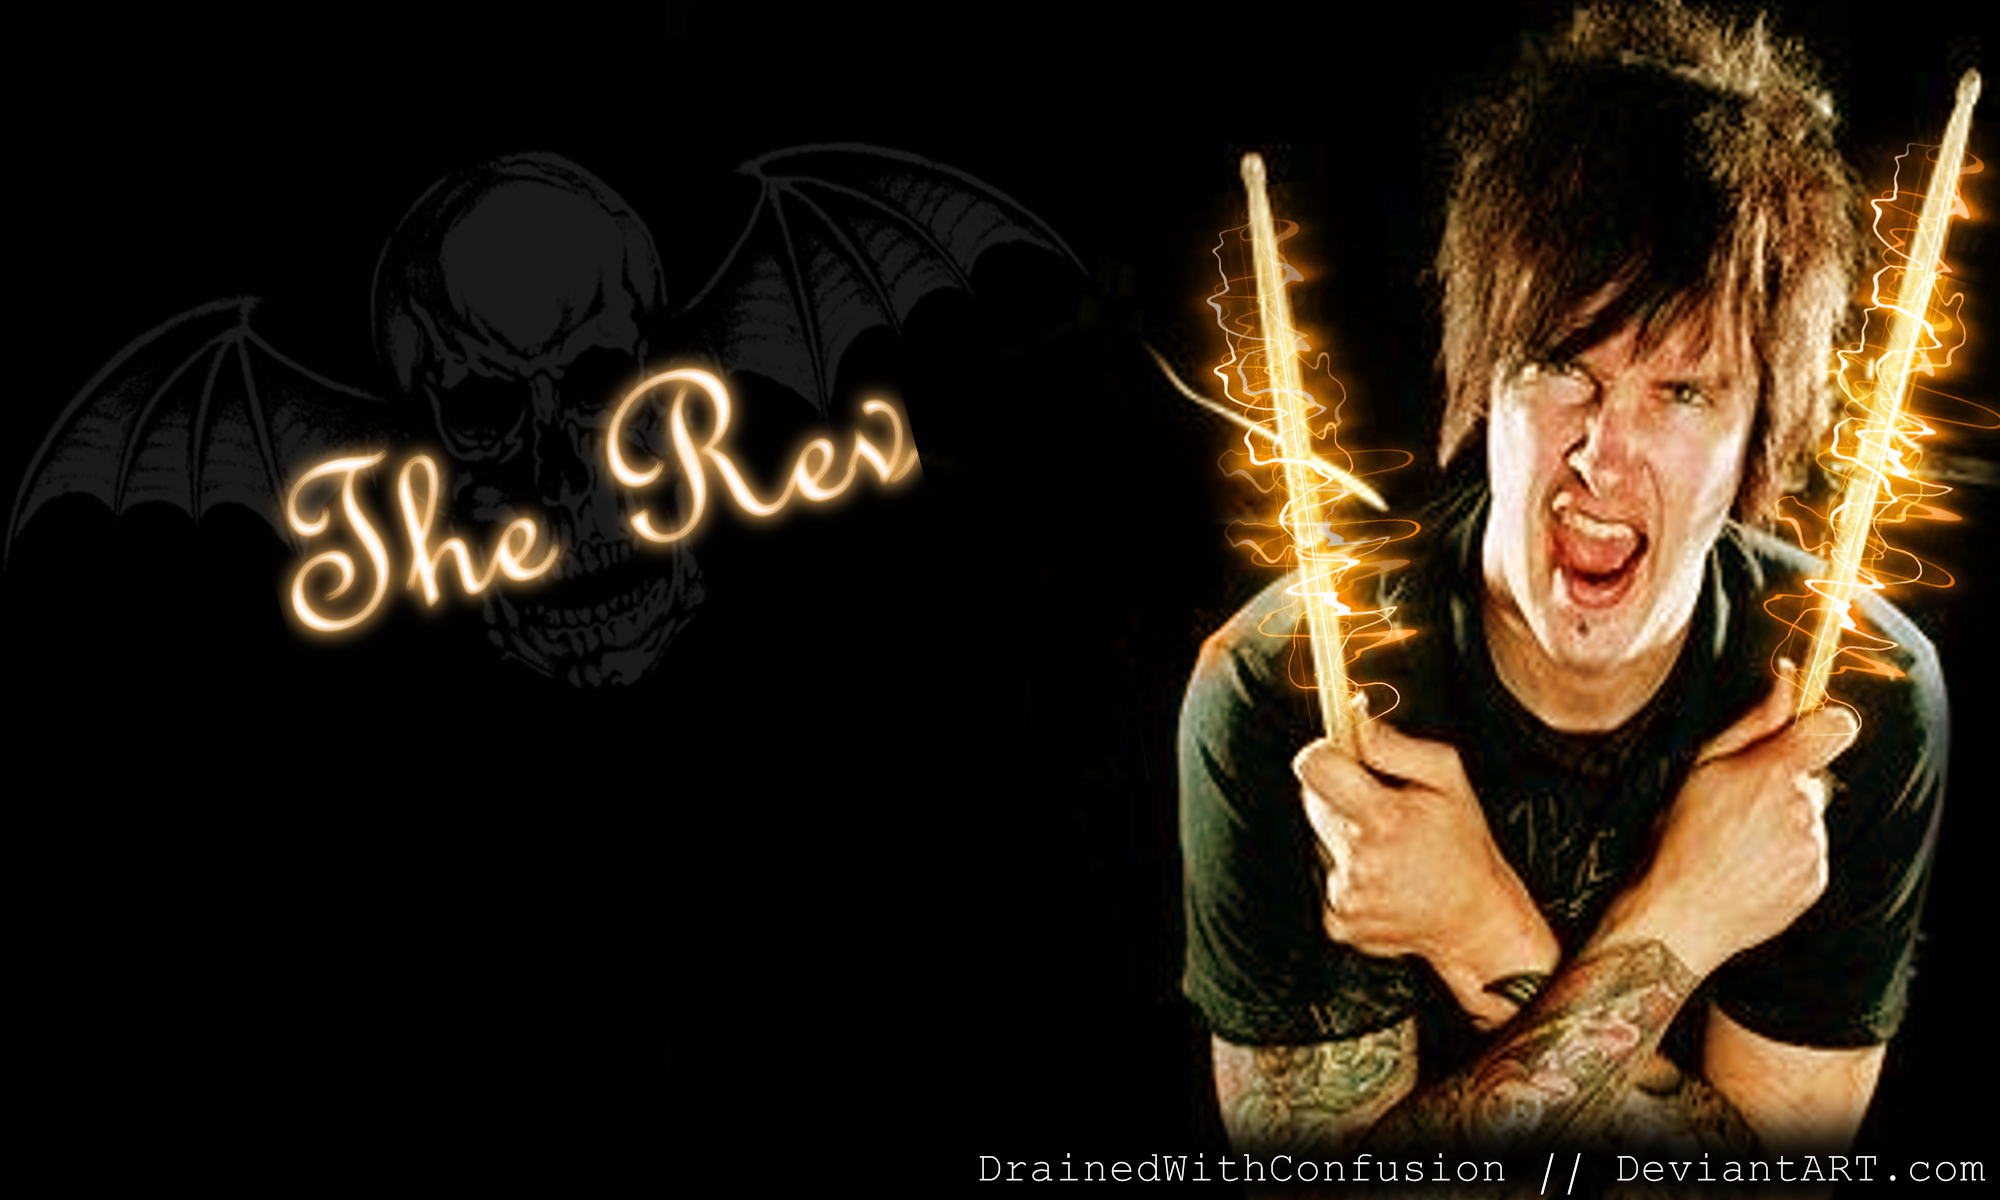 The Rev   Wallpaper 1 by DrainedWithConfusion 2000x1200